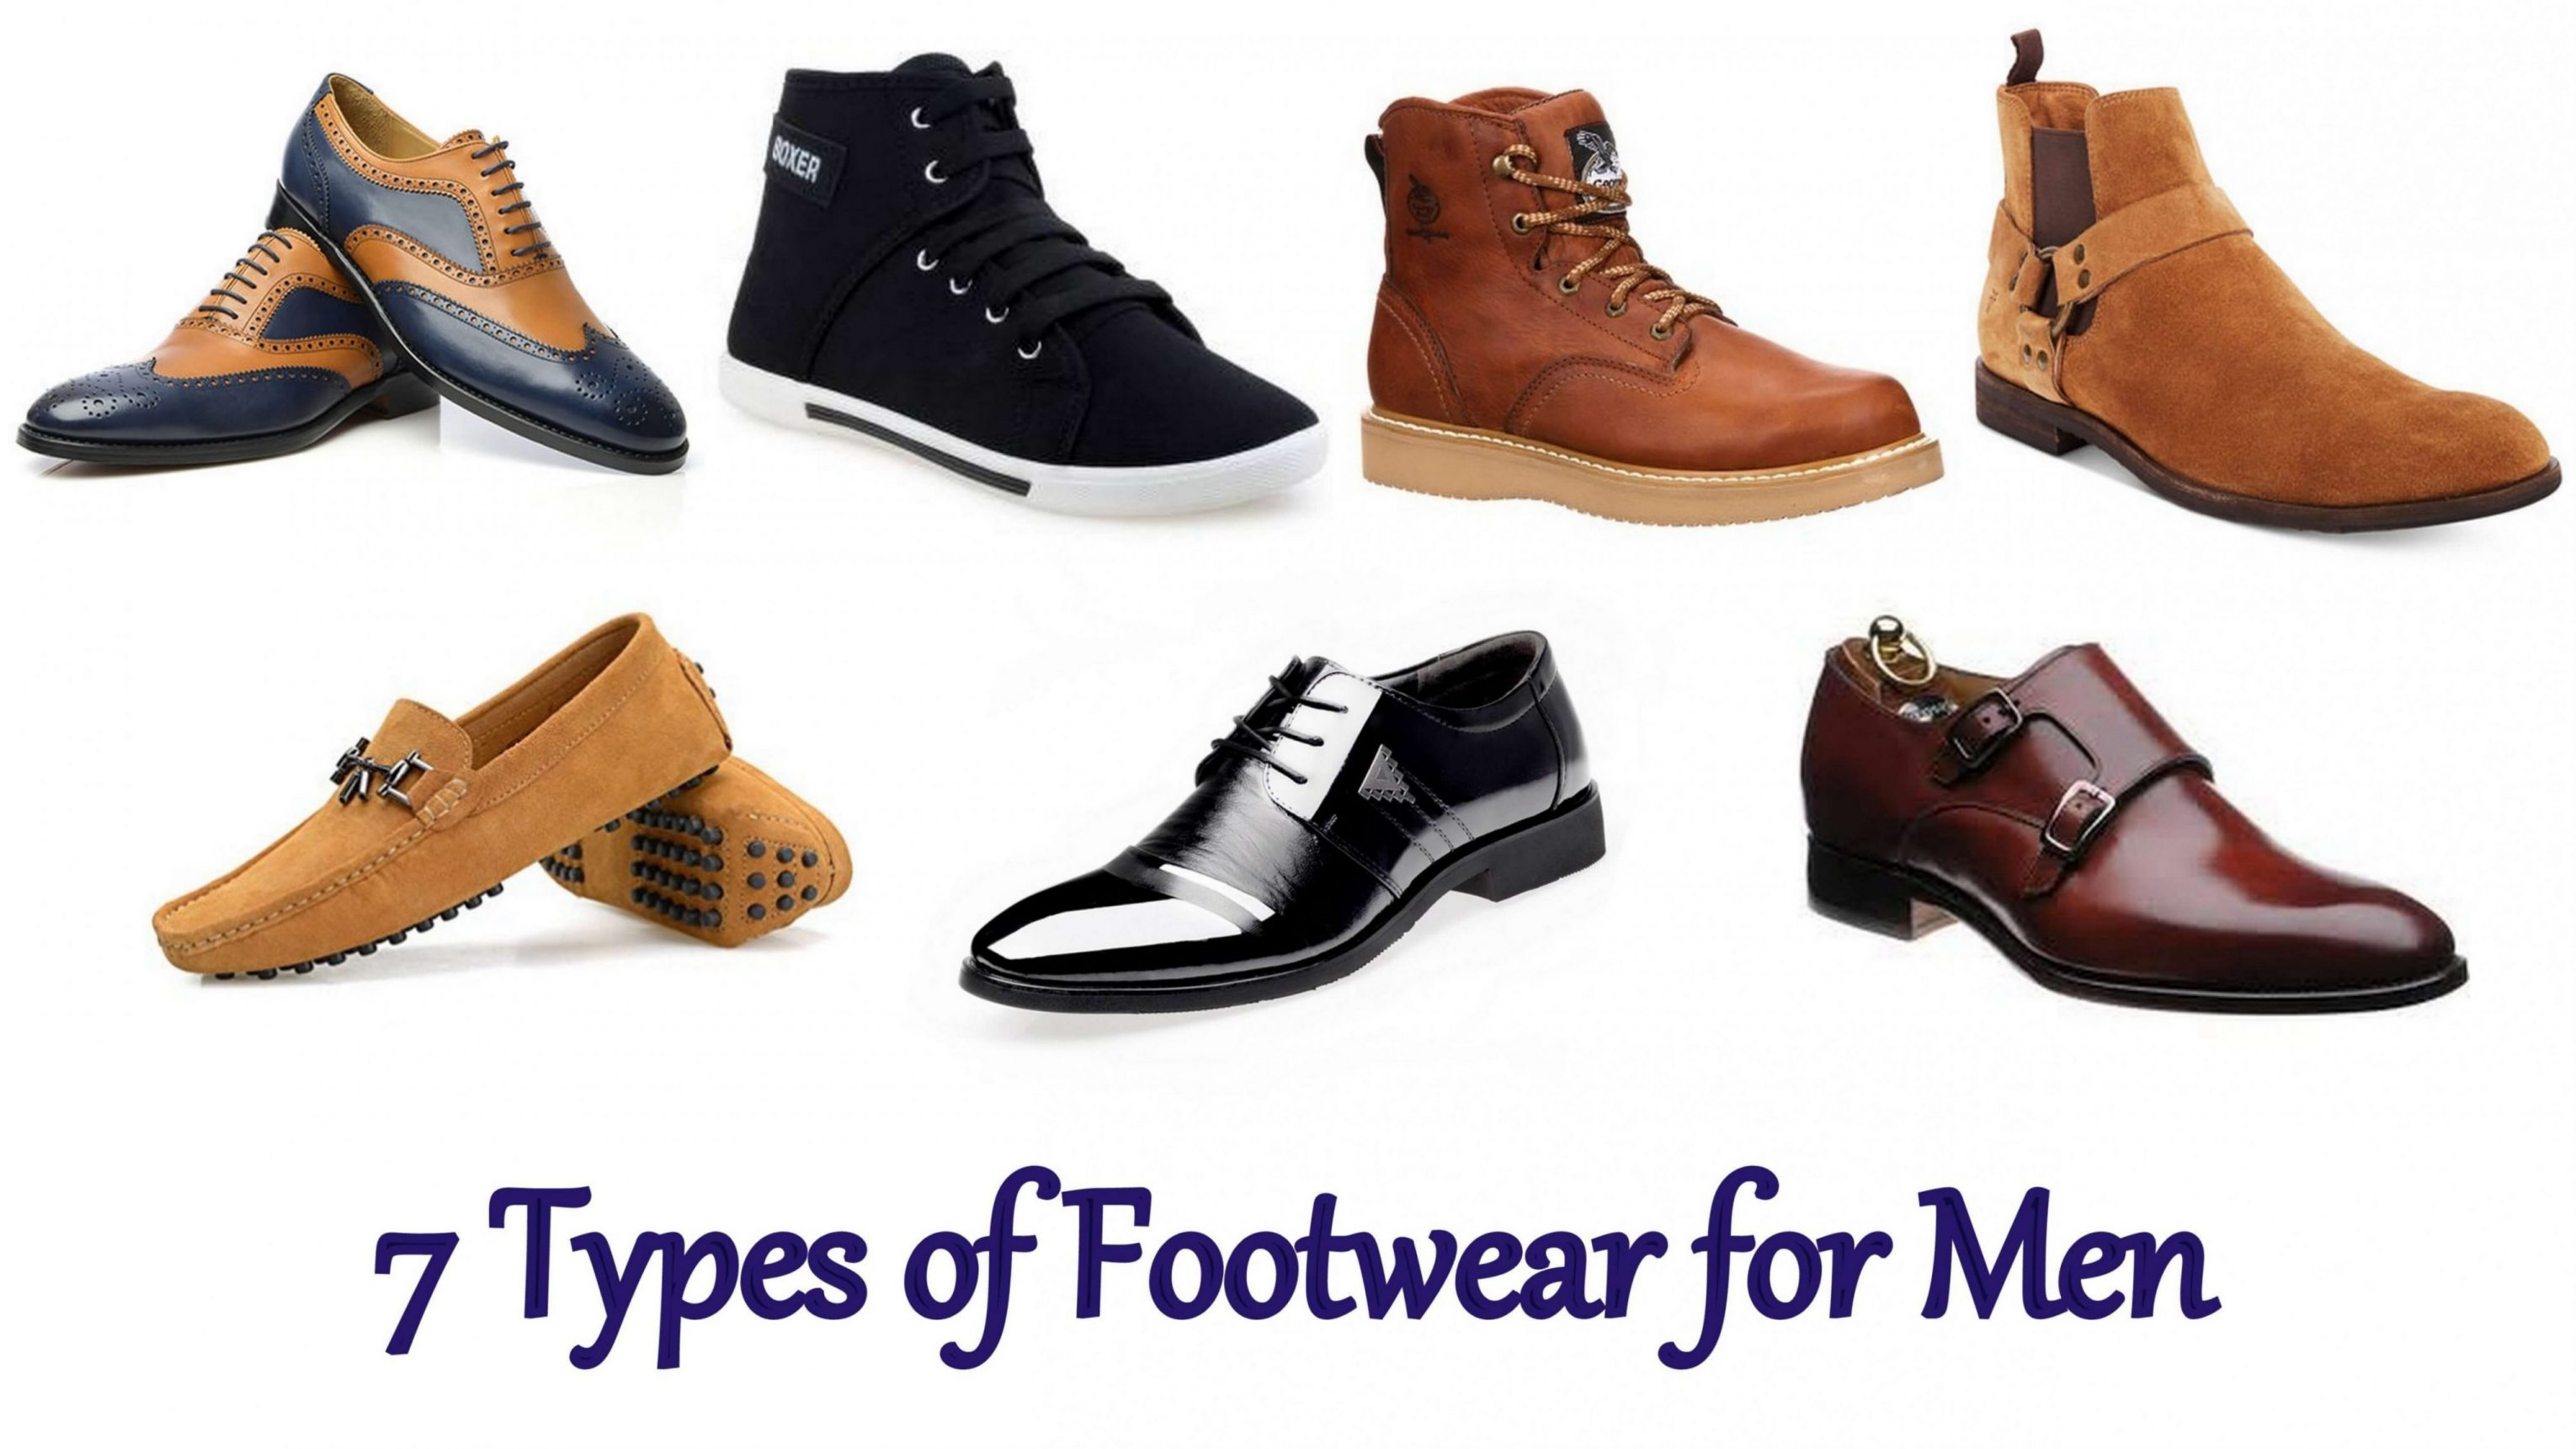 Different Types of Shoes for Men Online, List of different styles of shoes for men